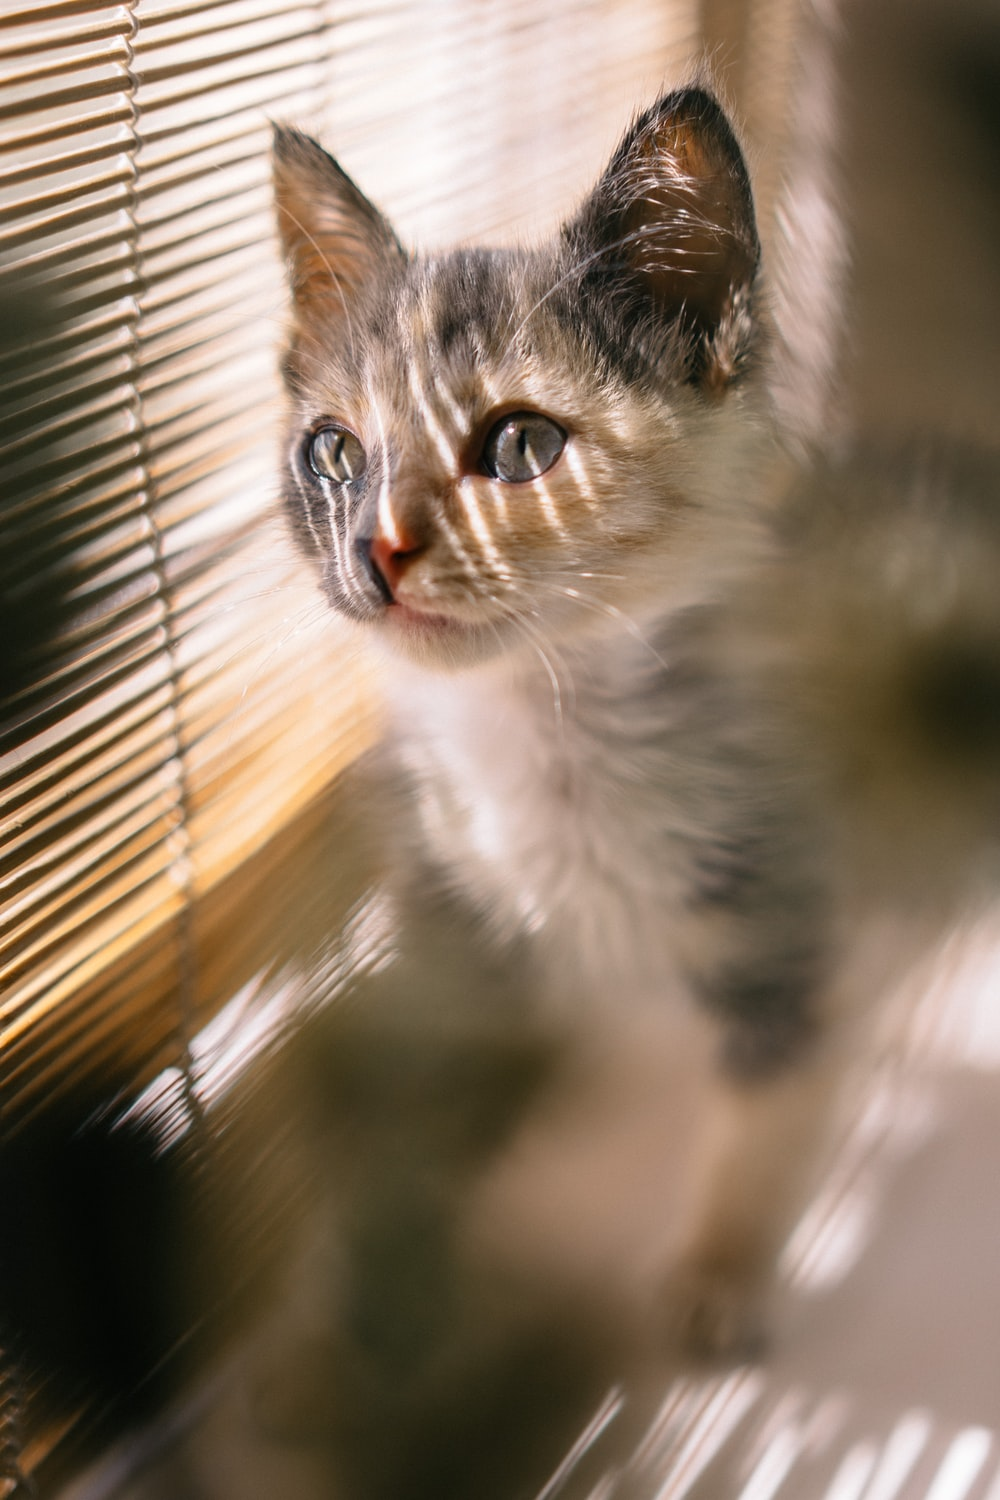 You can see more pics with our kitten    | HD photo by